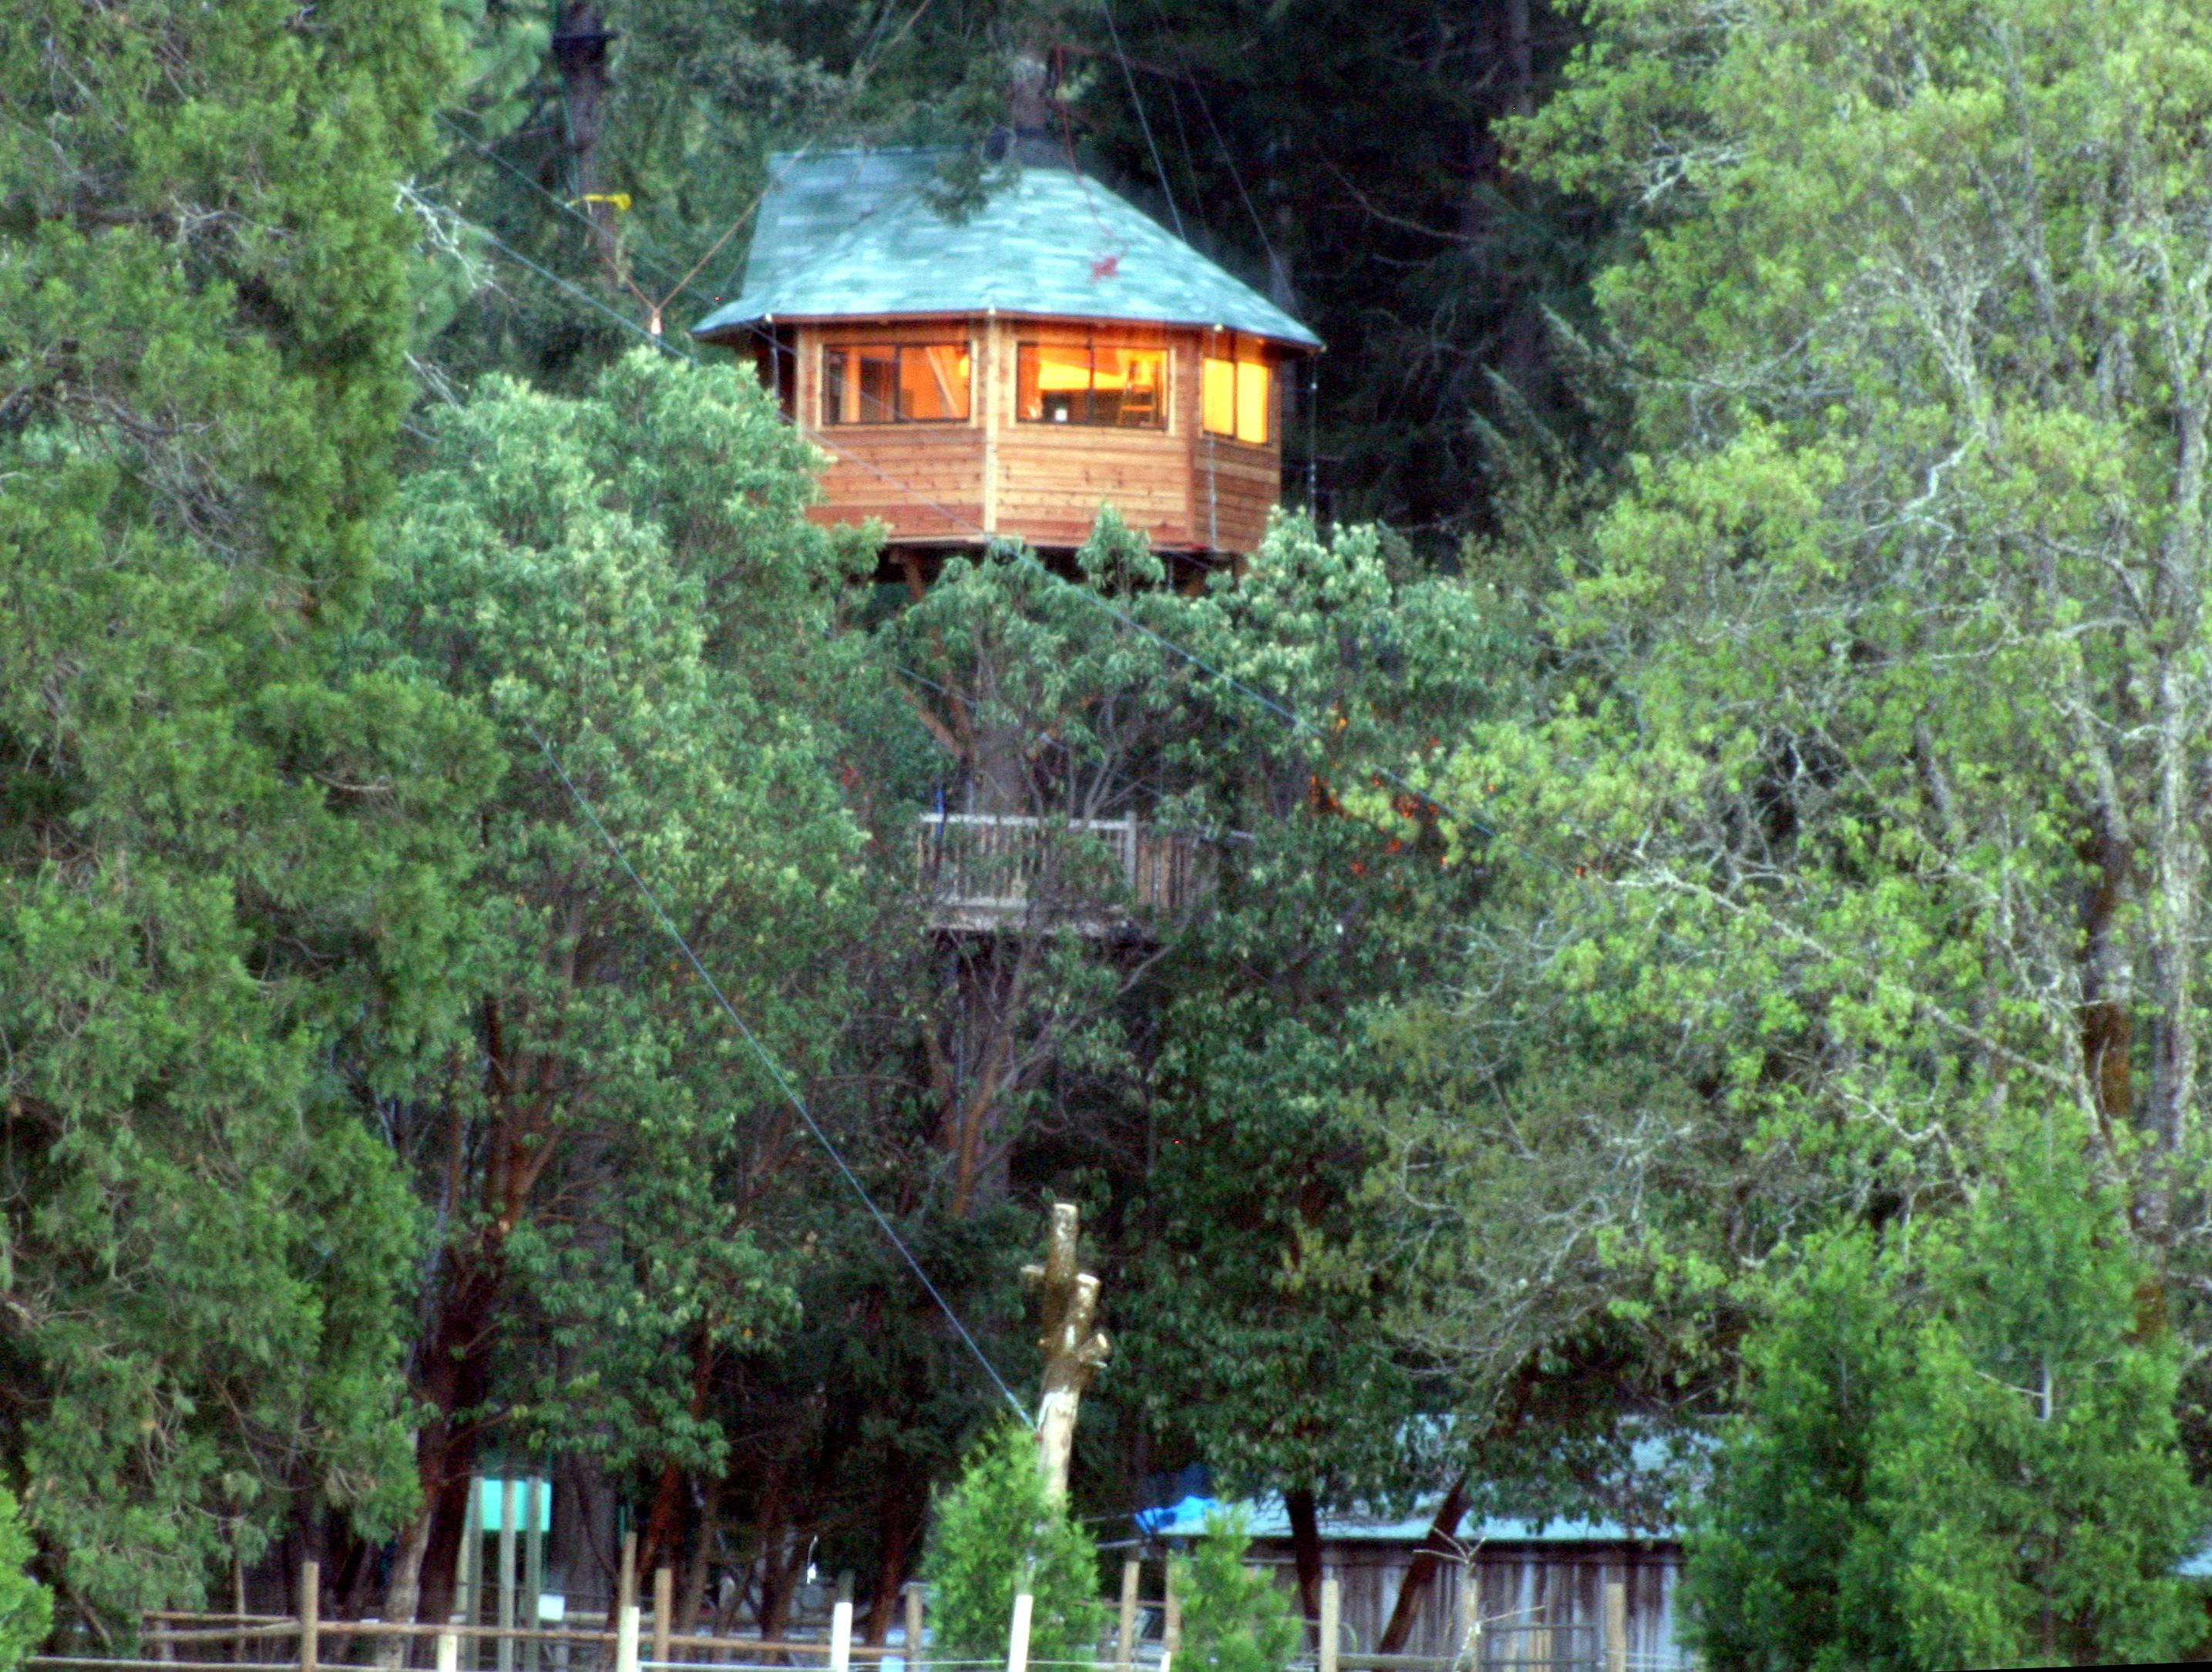 6x Inspirerende Boomhutten : Tree house resort in oregon. the perfect vacation spot for peter pan